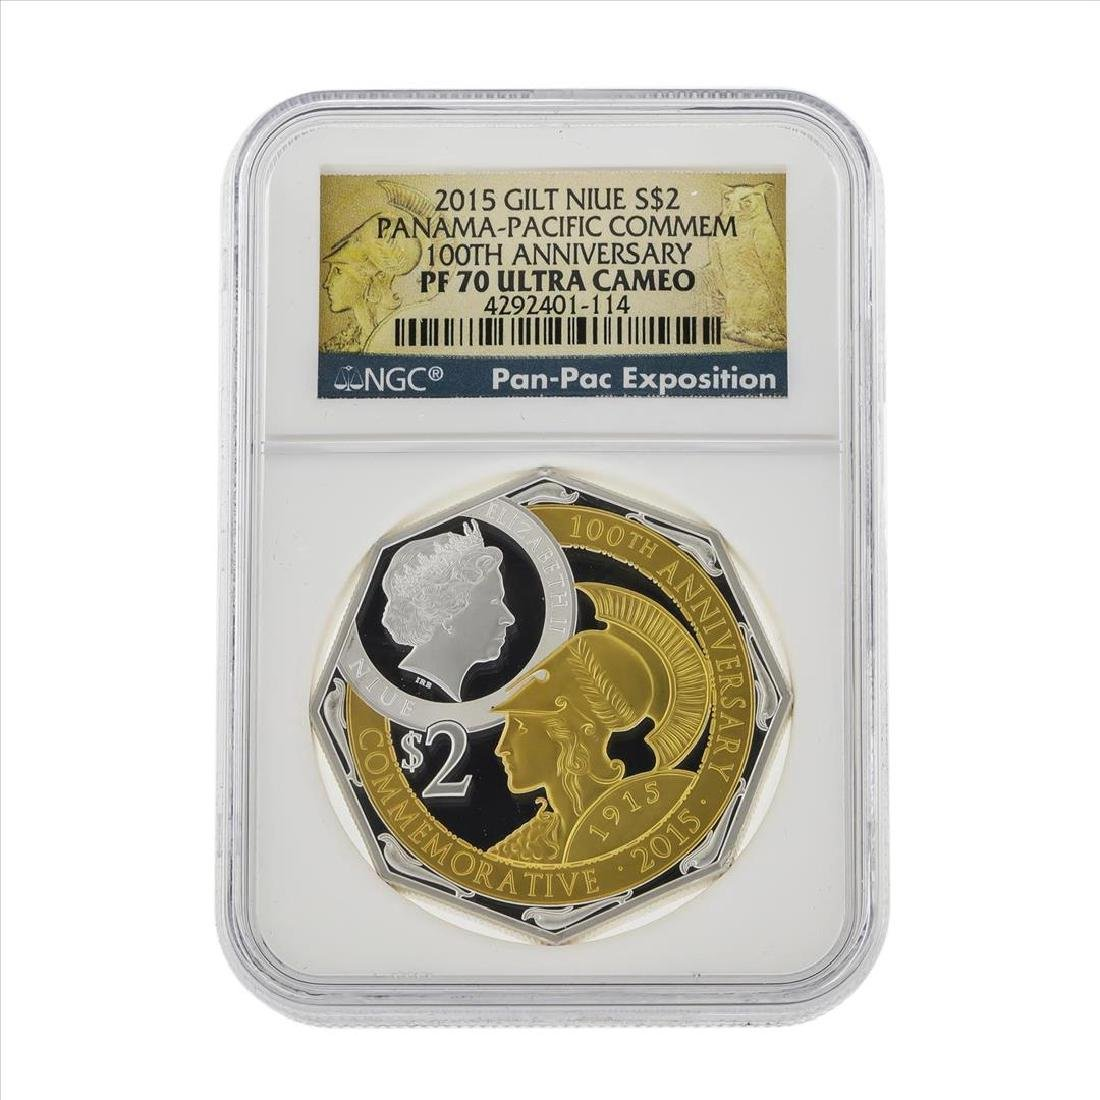 2015 Gilt Niue $2 Panama Pacific Commemorative Coin NGC